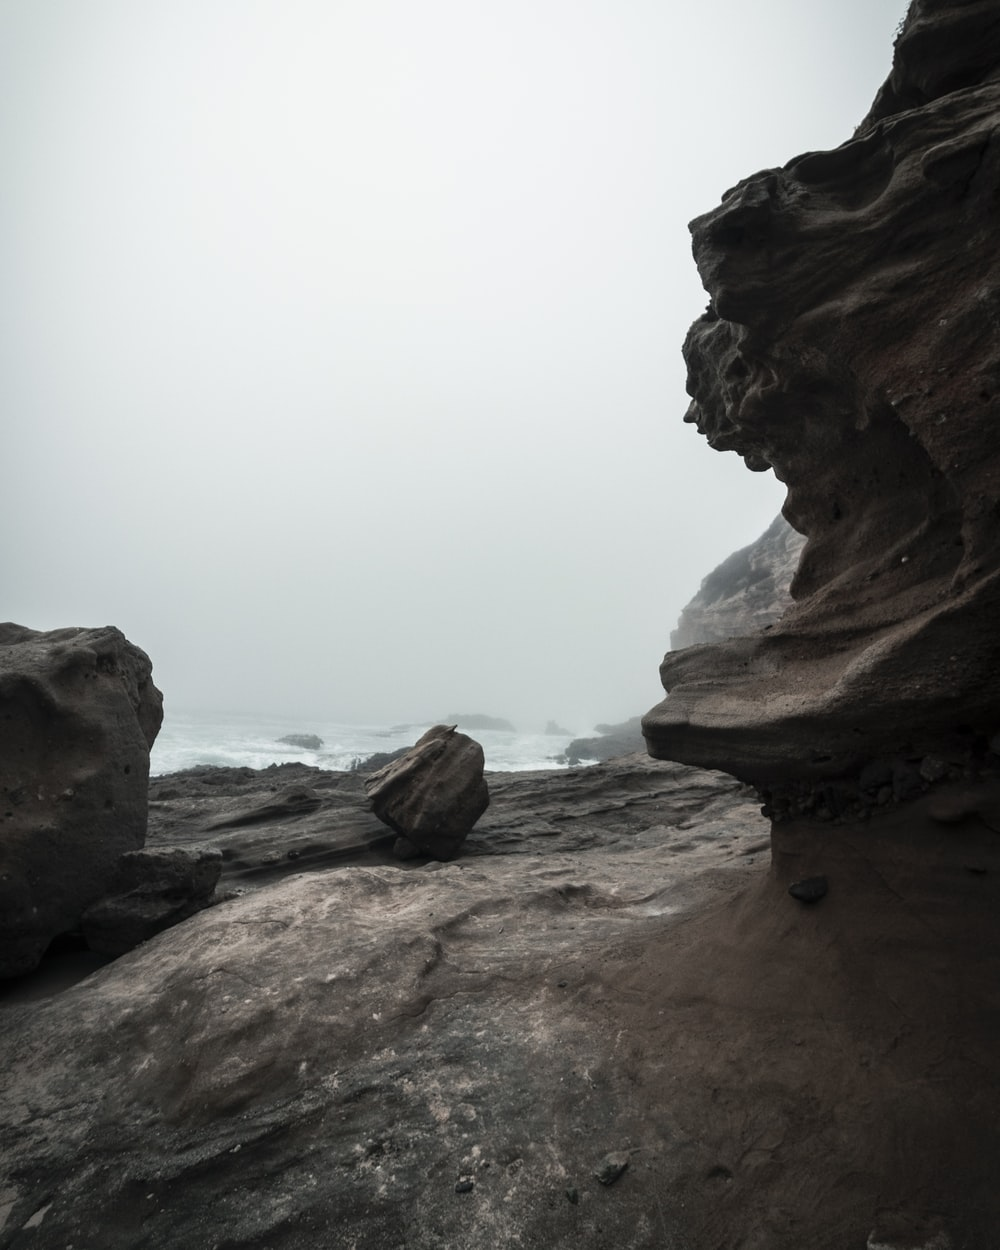 brown rock formation near body of water during daytime